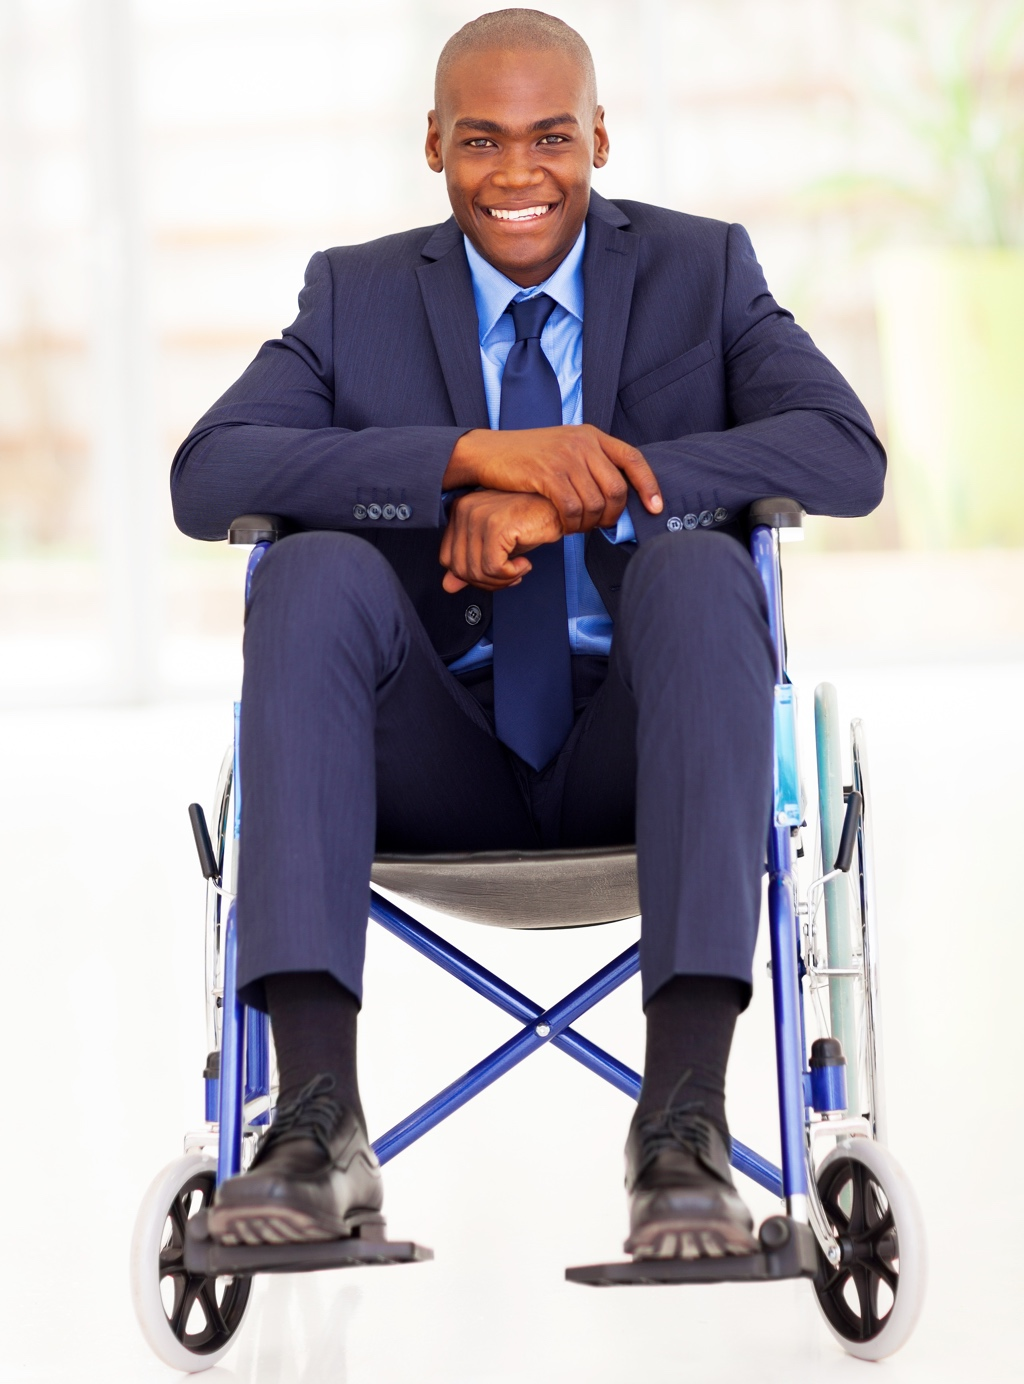 Are you DISABLED unemployed youth? End-user computing learnership 2018 at a national company for 2018